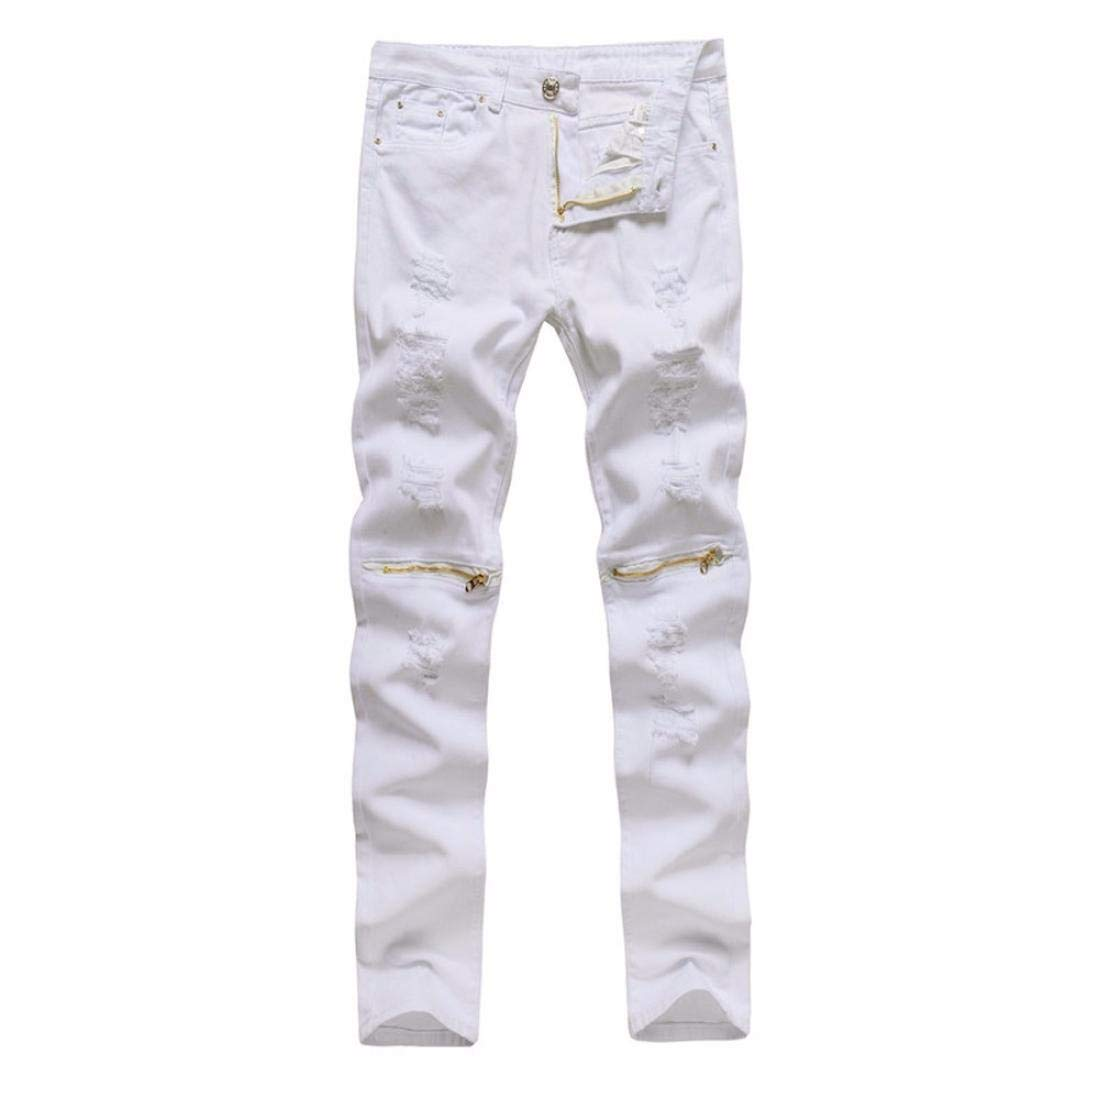 Realdo Clearance Sale, Casual Stretchy Ripped Skinny Jeans Destroyed Solid Slim Fit Pants Daily(30,White)